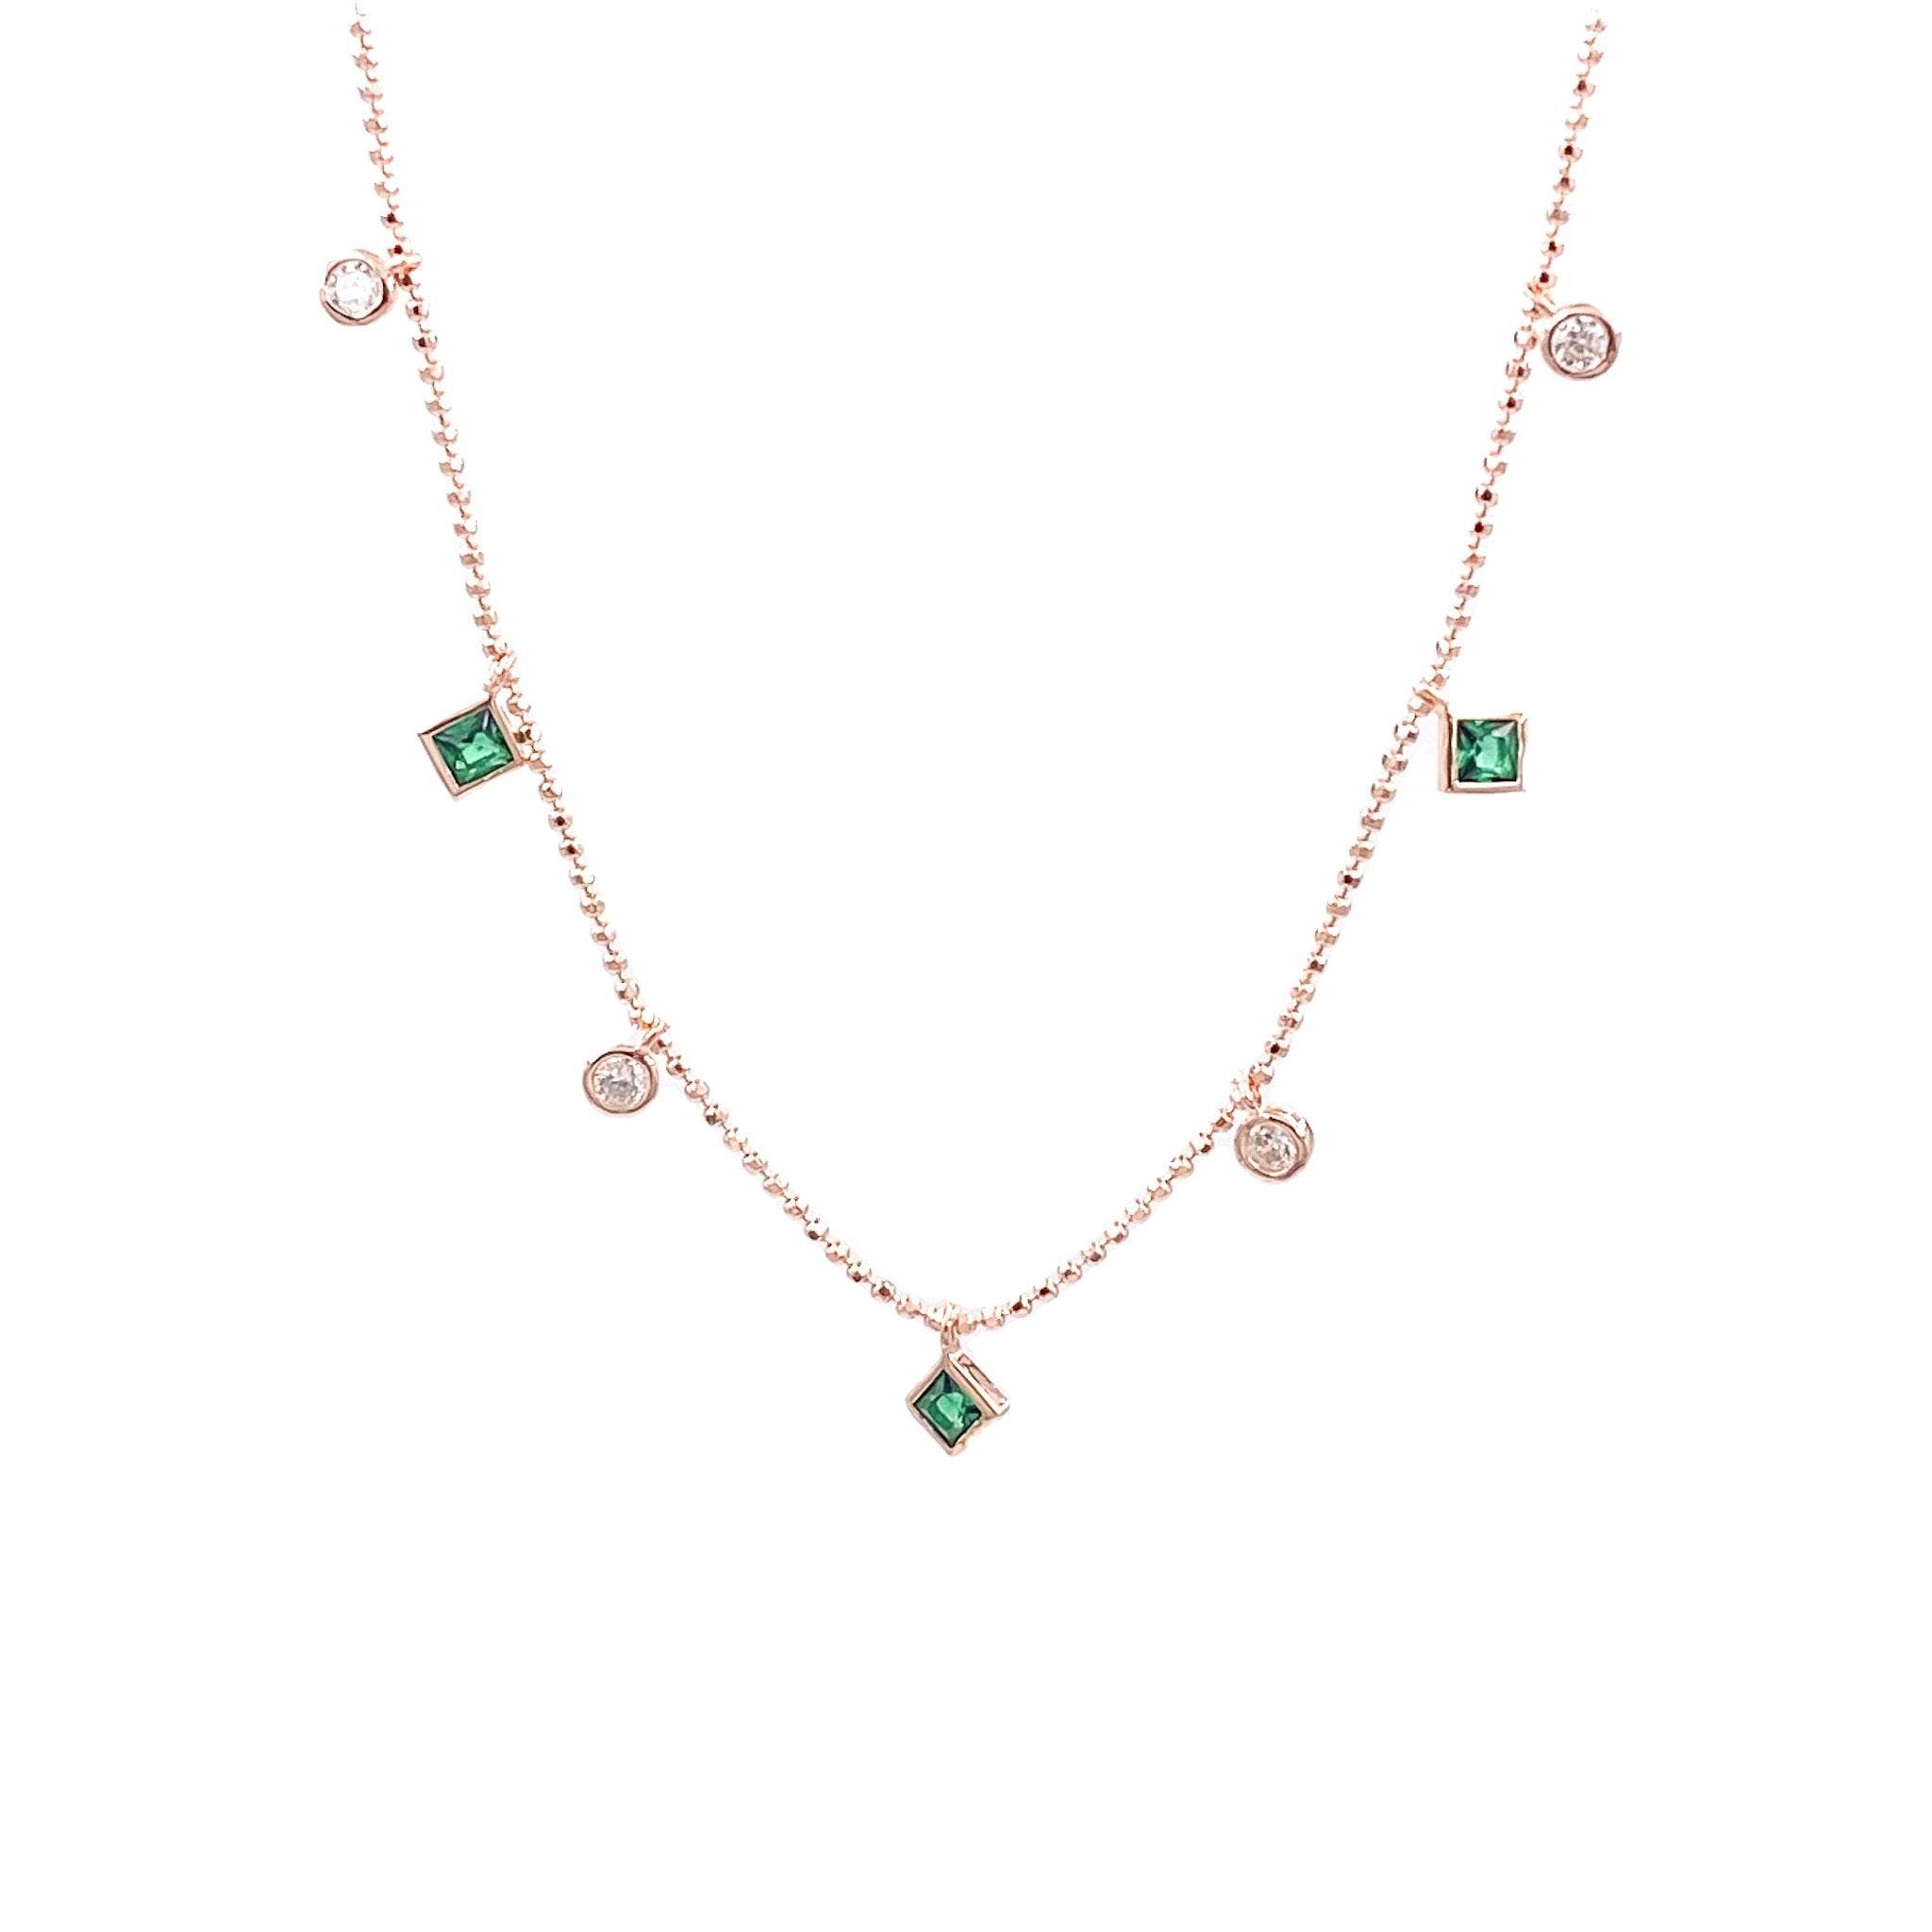 Emerald Tiles Necklace